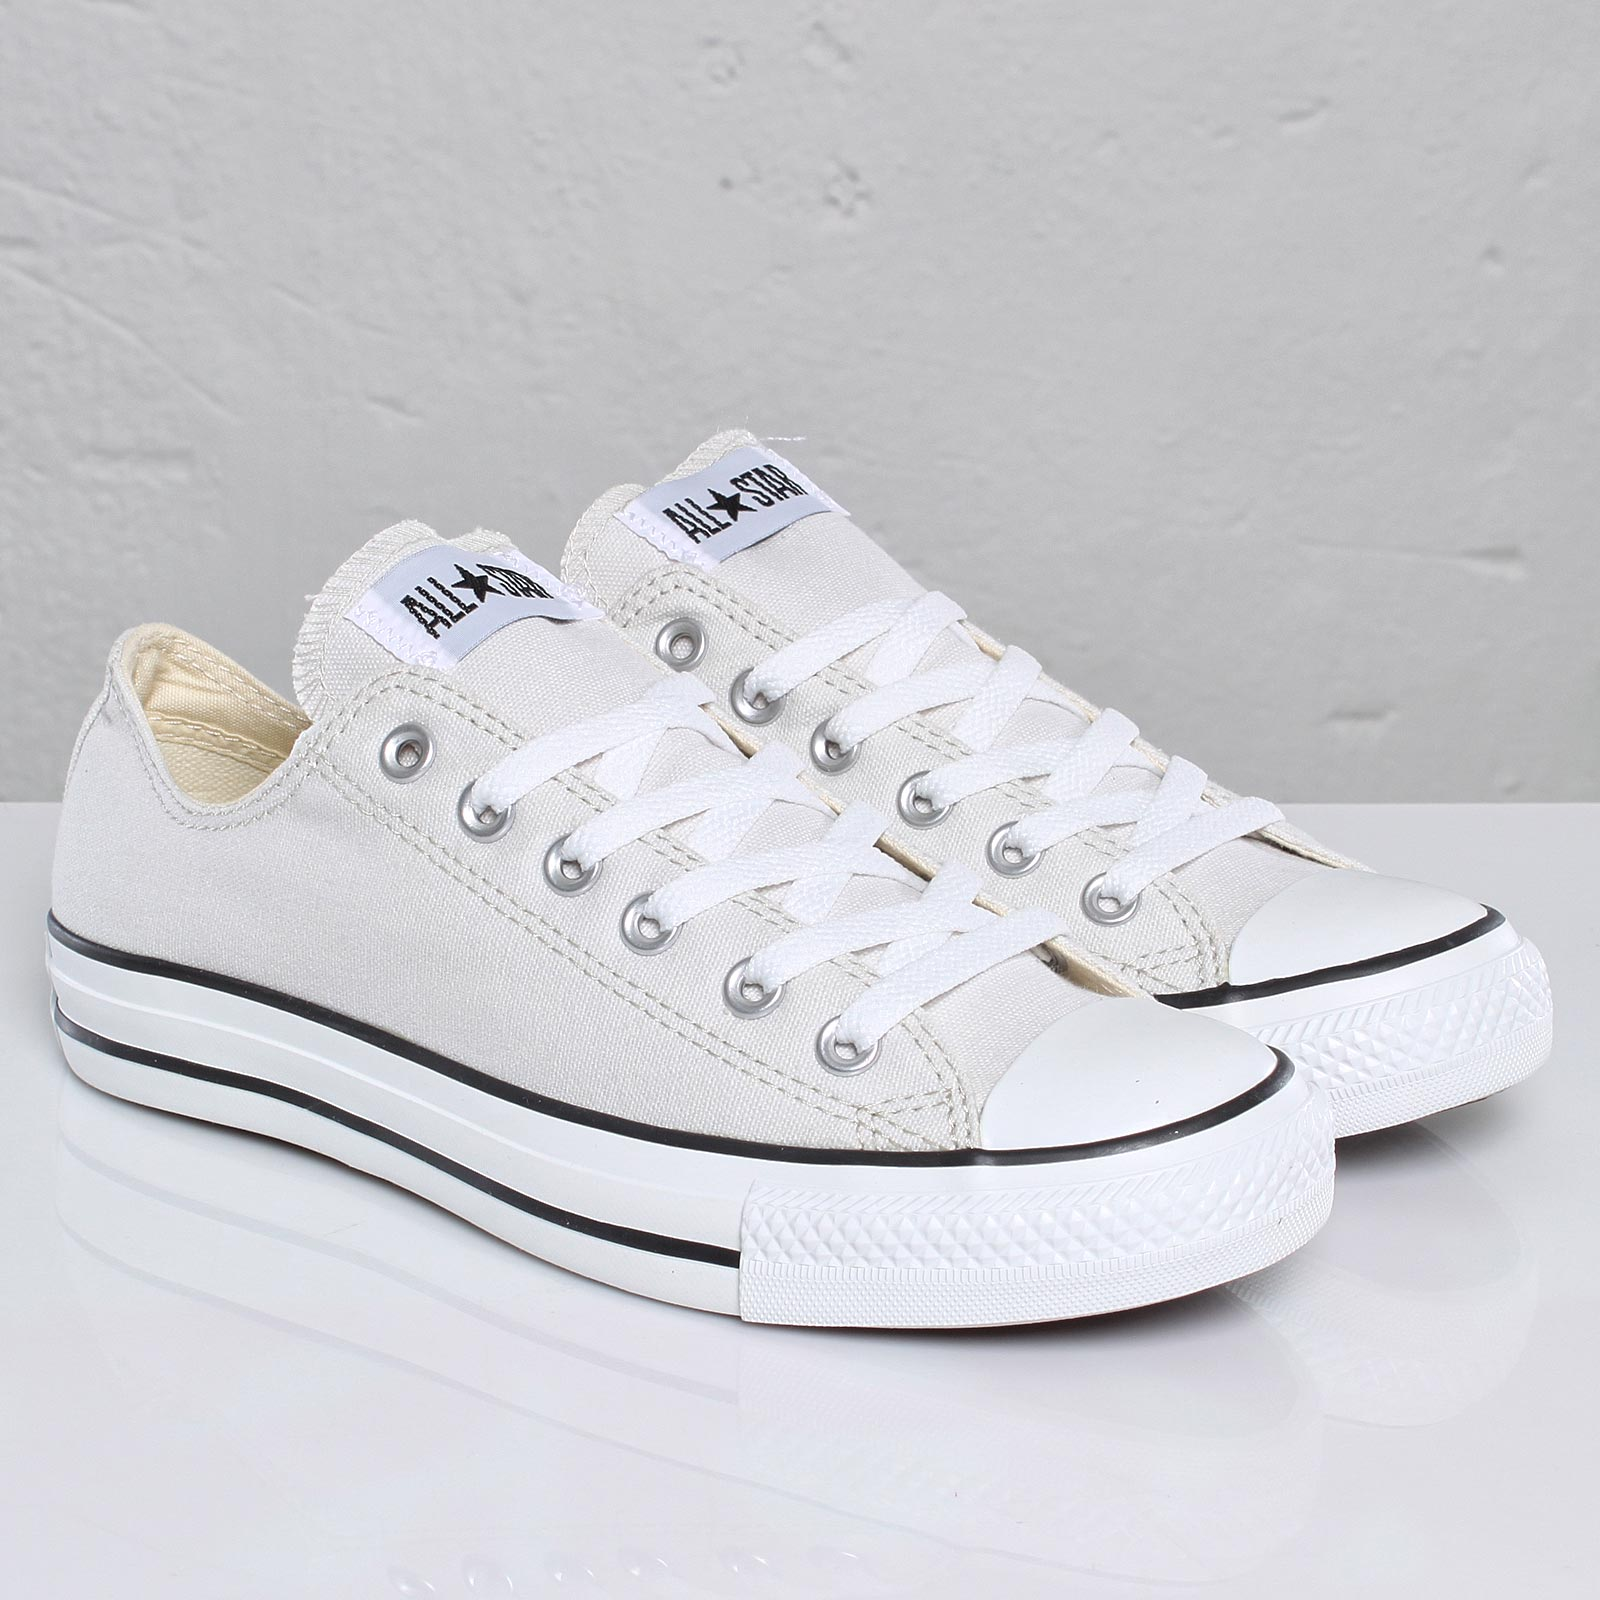 Converse All Star Specialty OX - 100834 - Sneakersnstuff  d94372756989